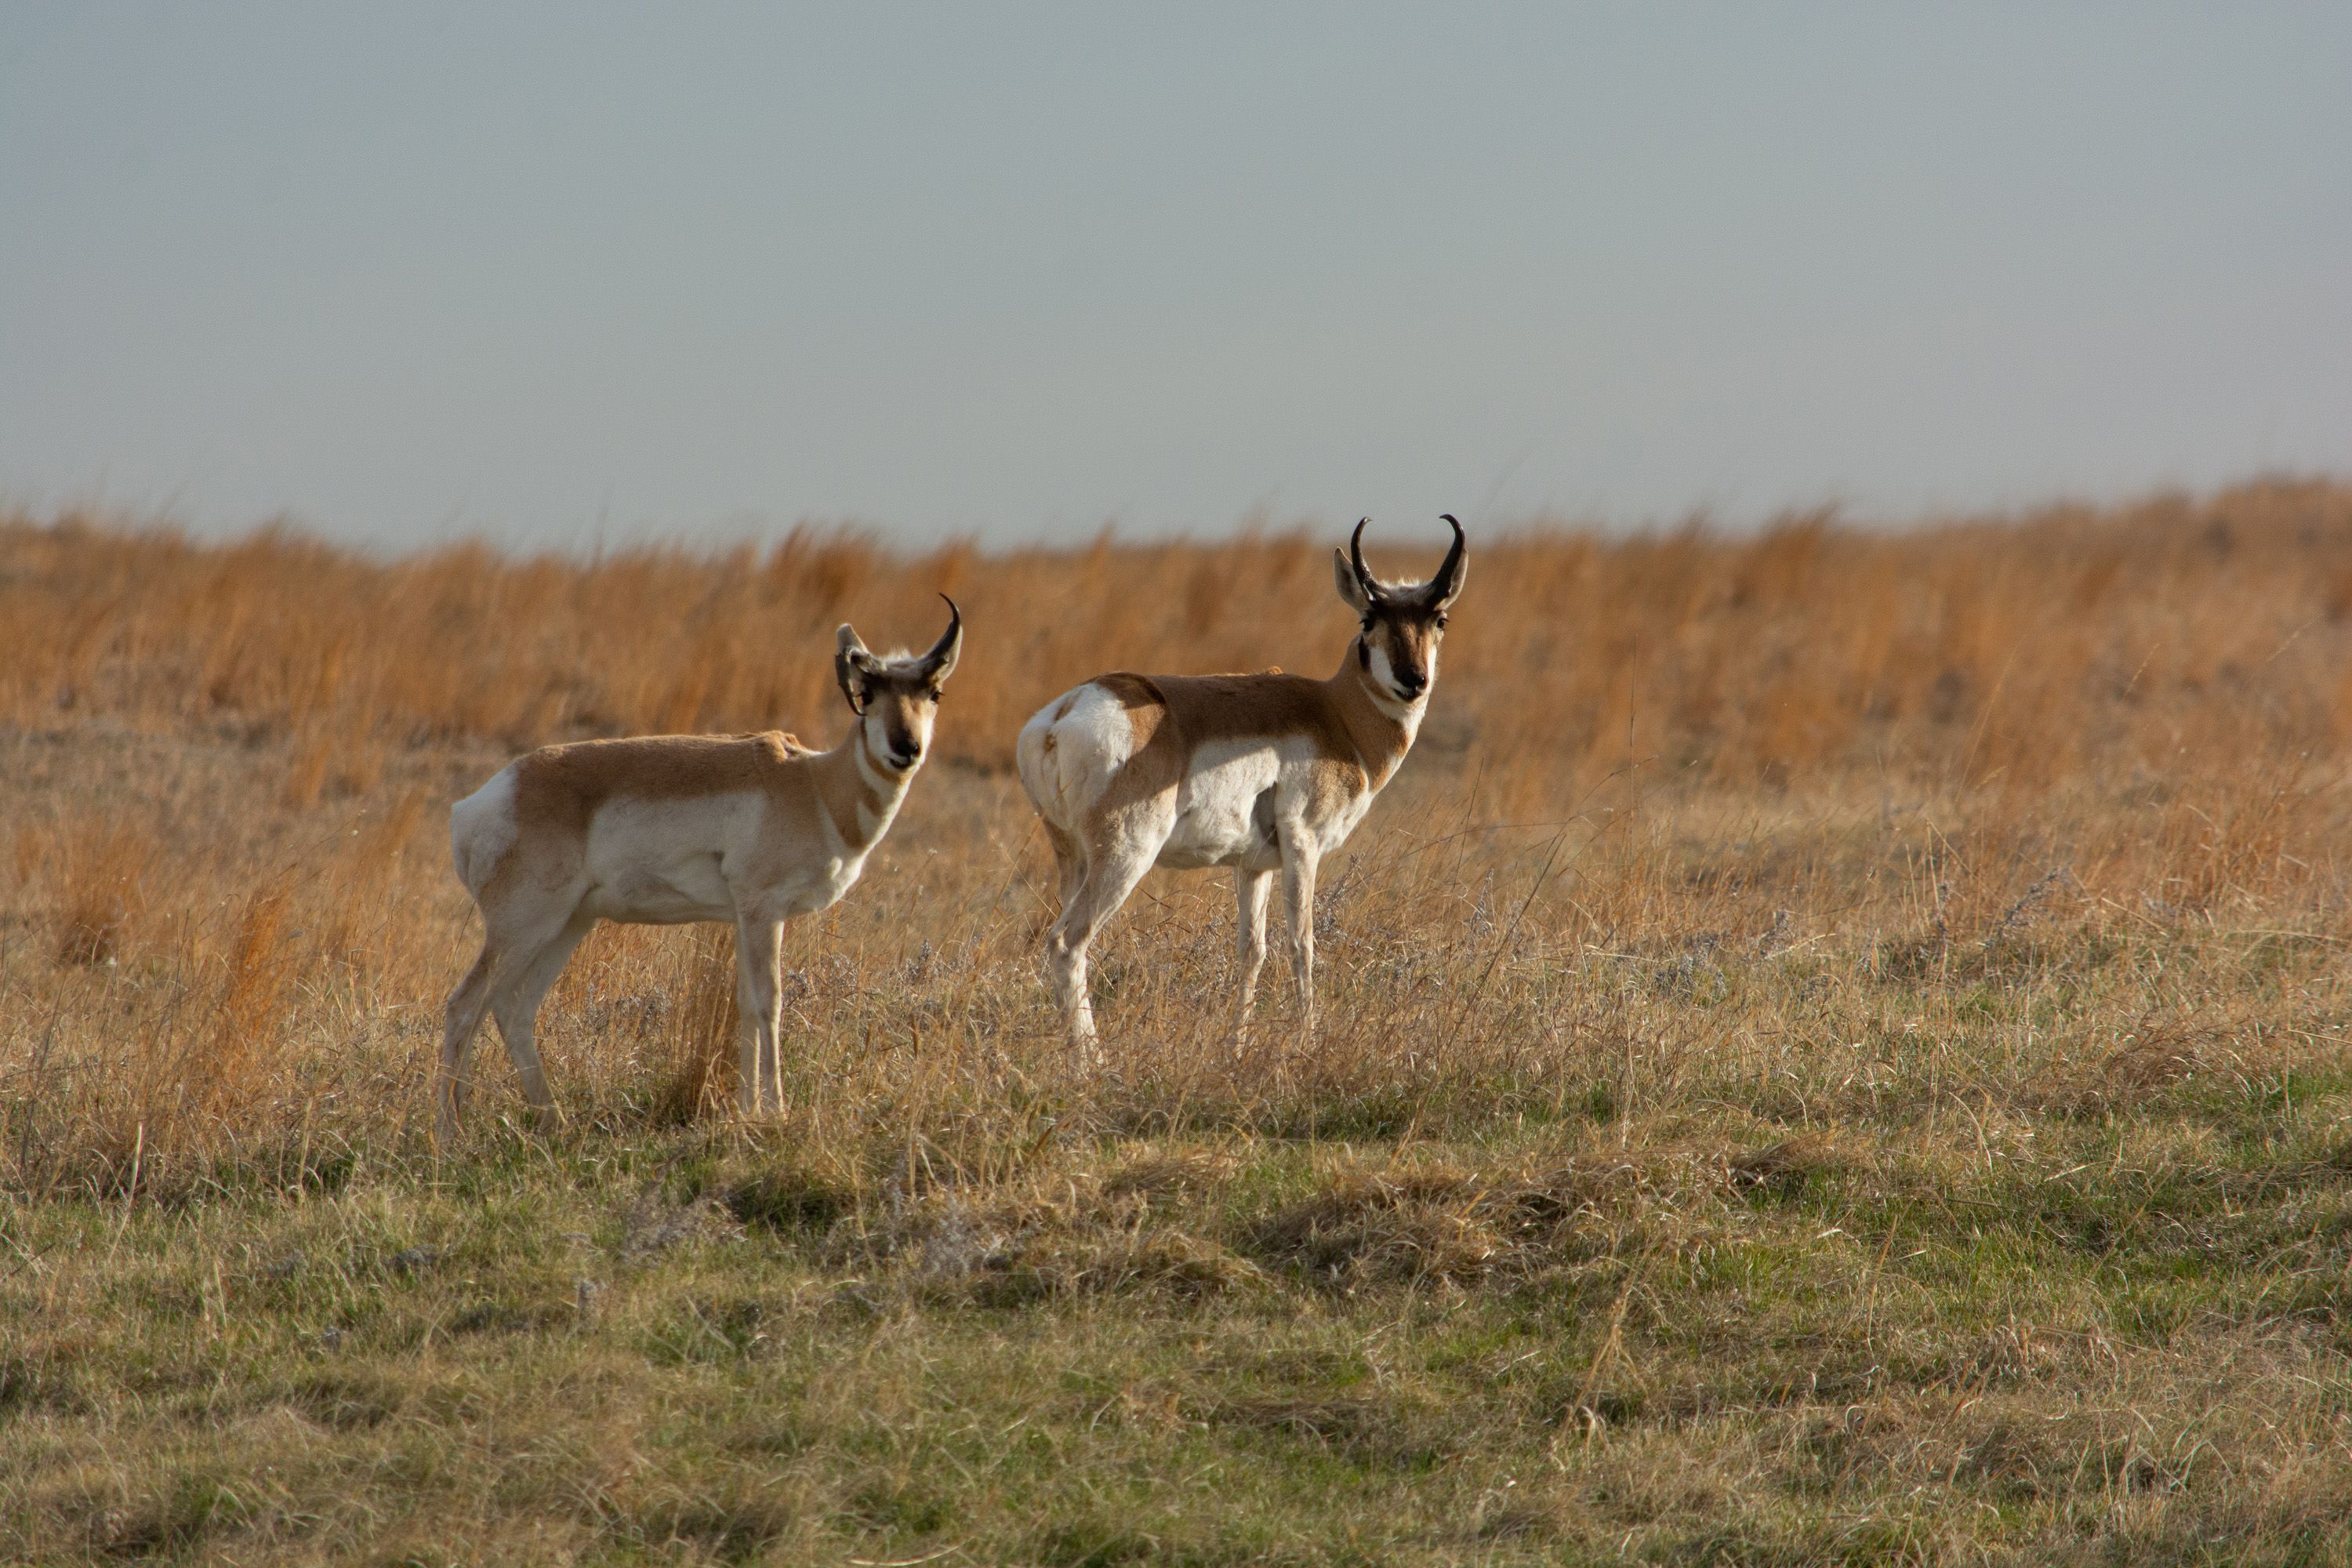 Pronghorn pair in the distance